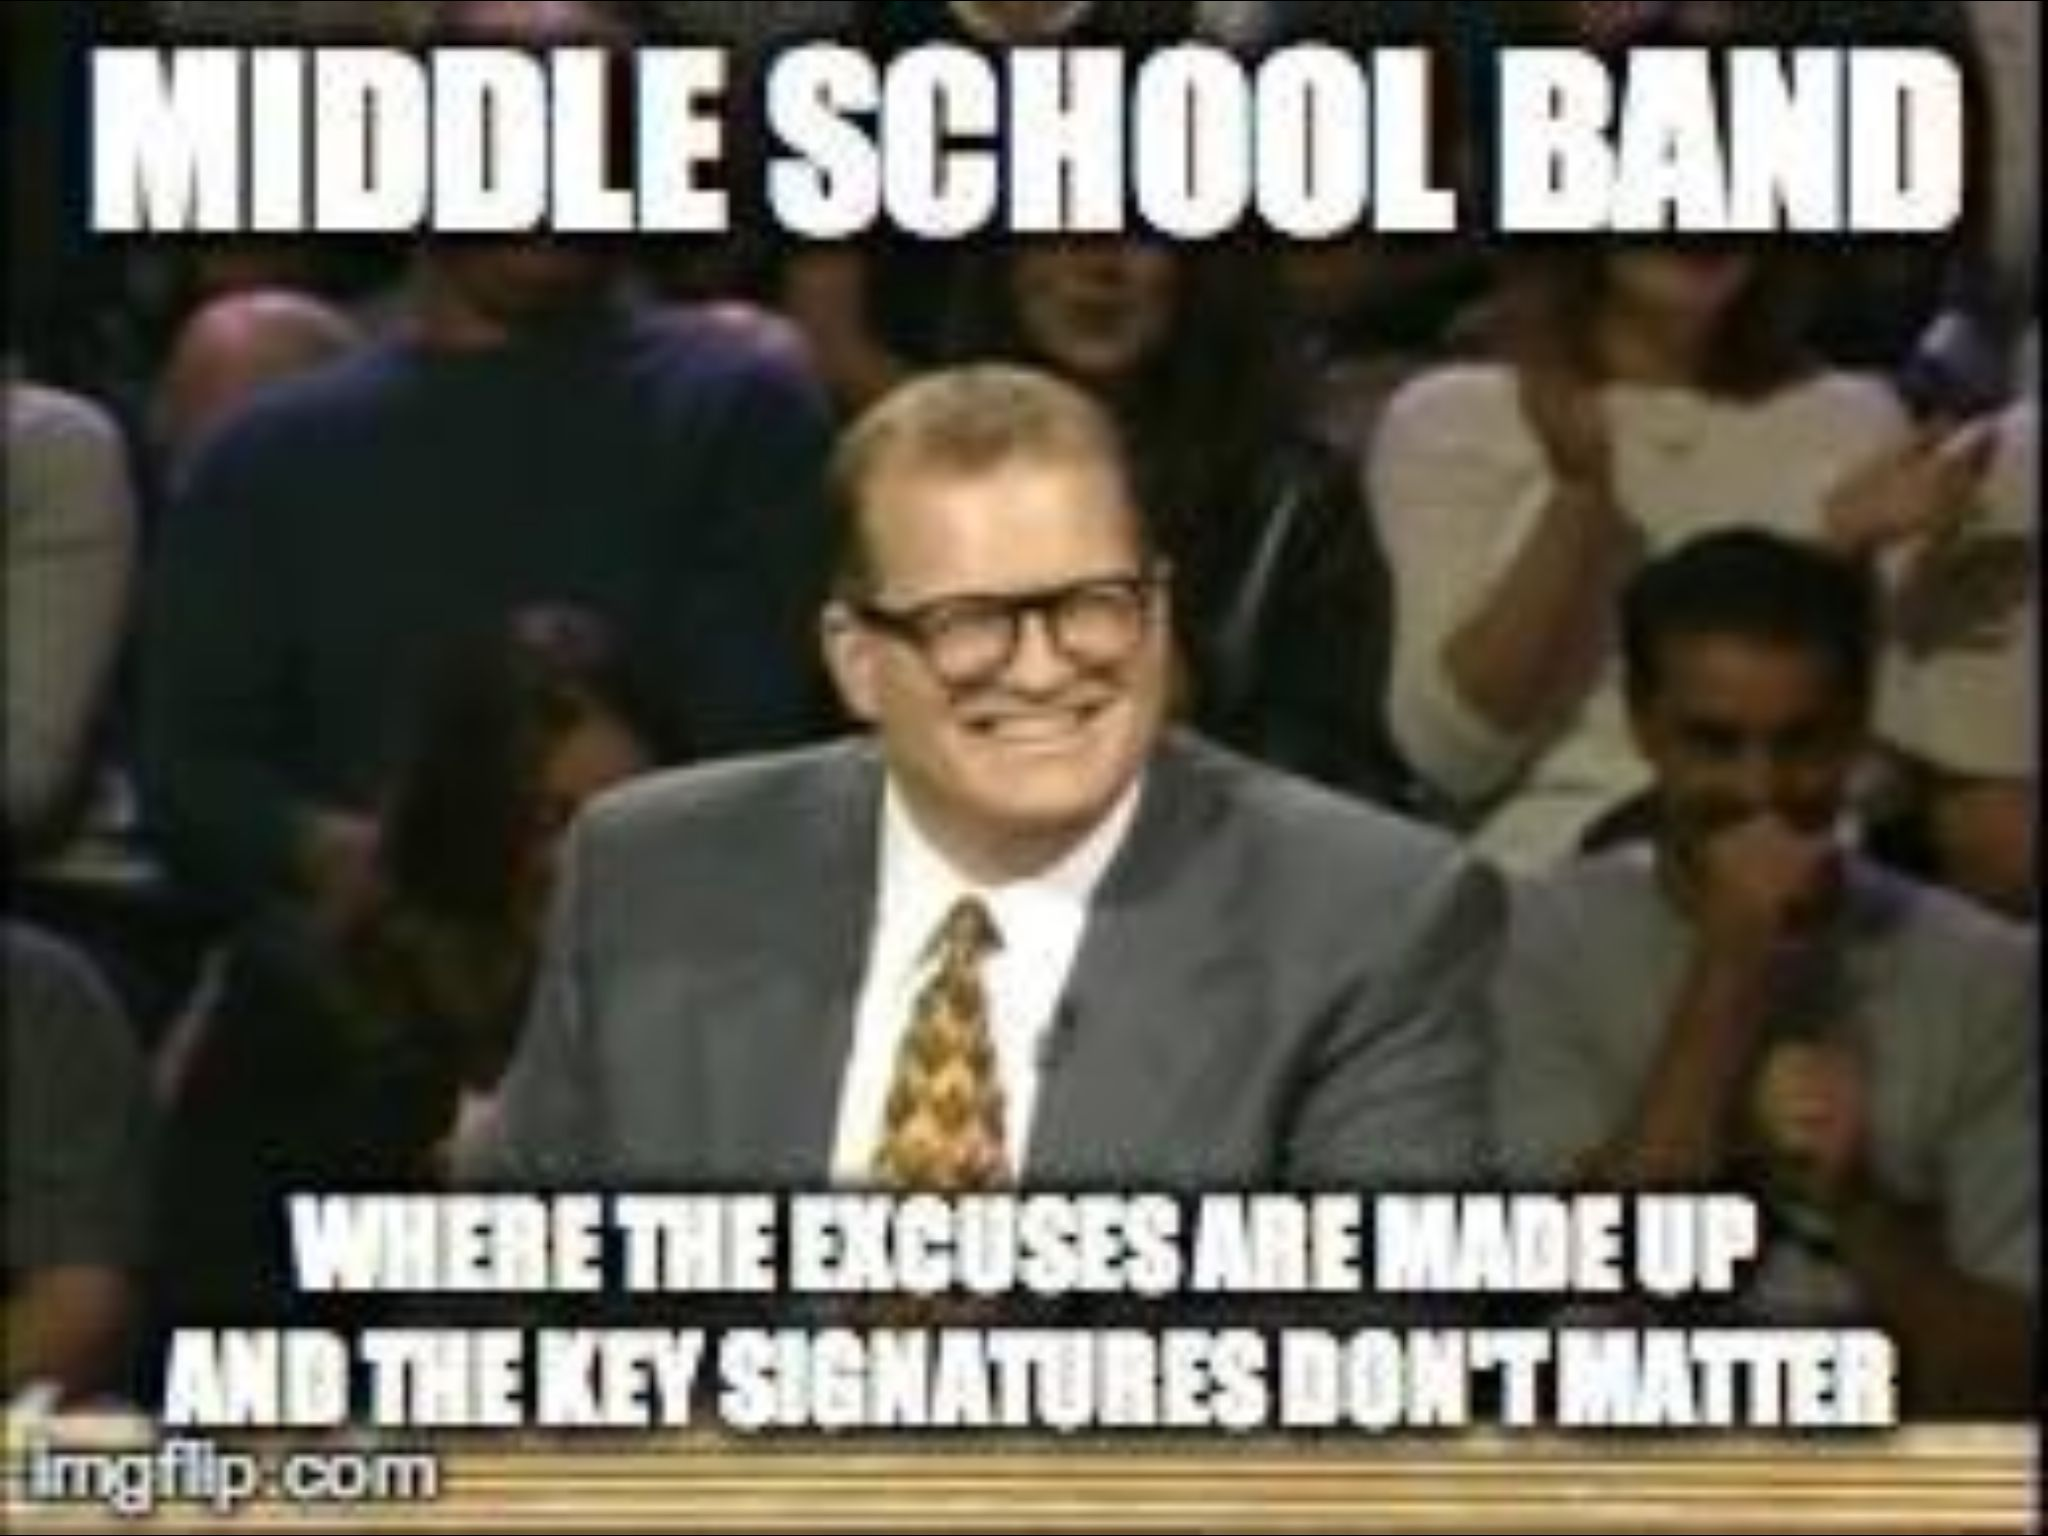 Funny Memes For Middle School Students : Middle school band memes pinterest